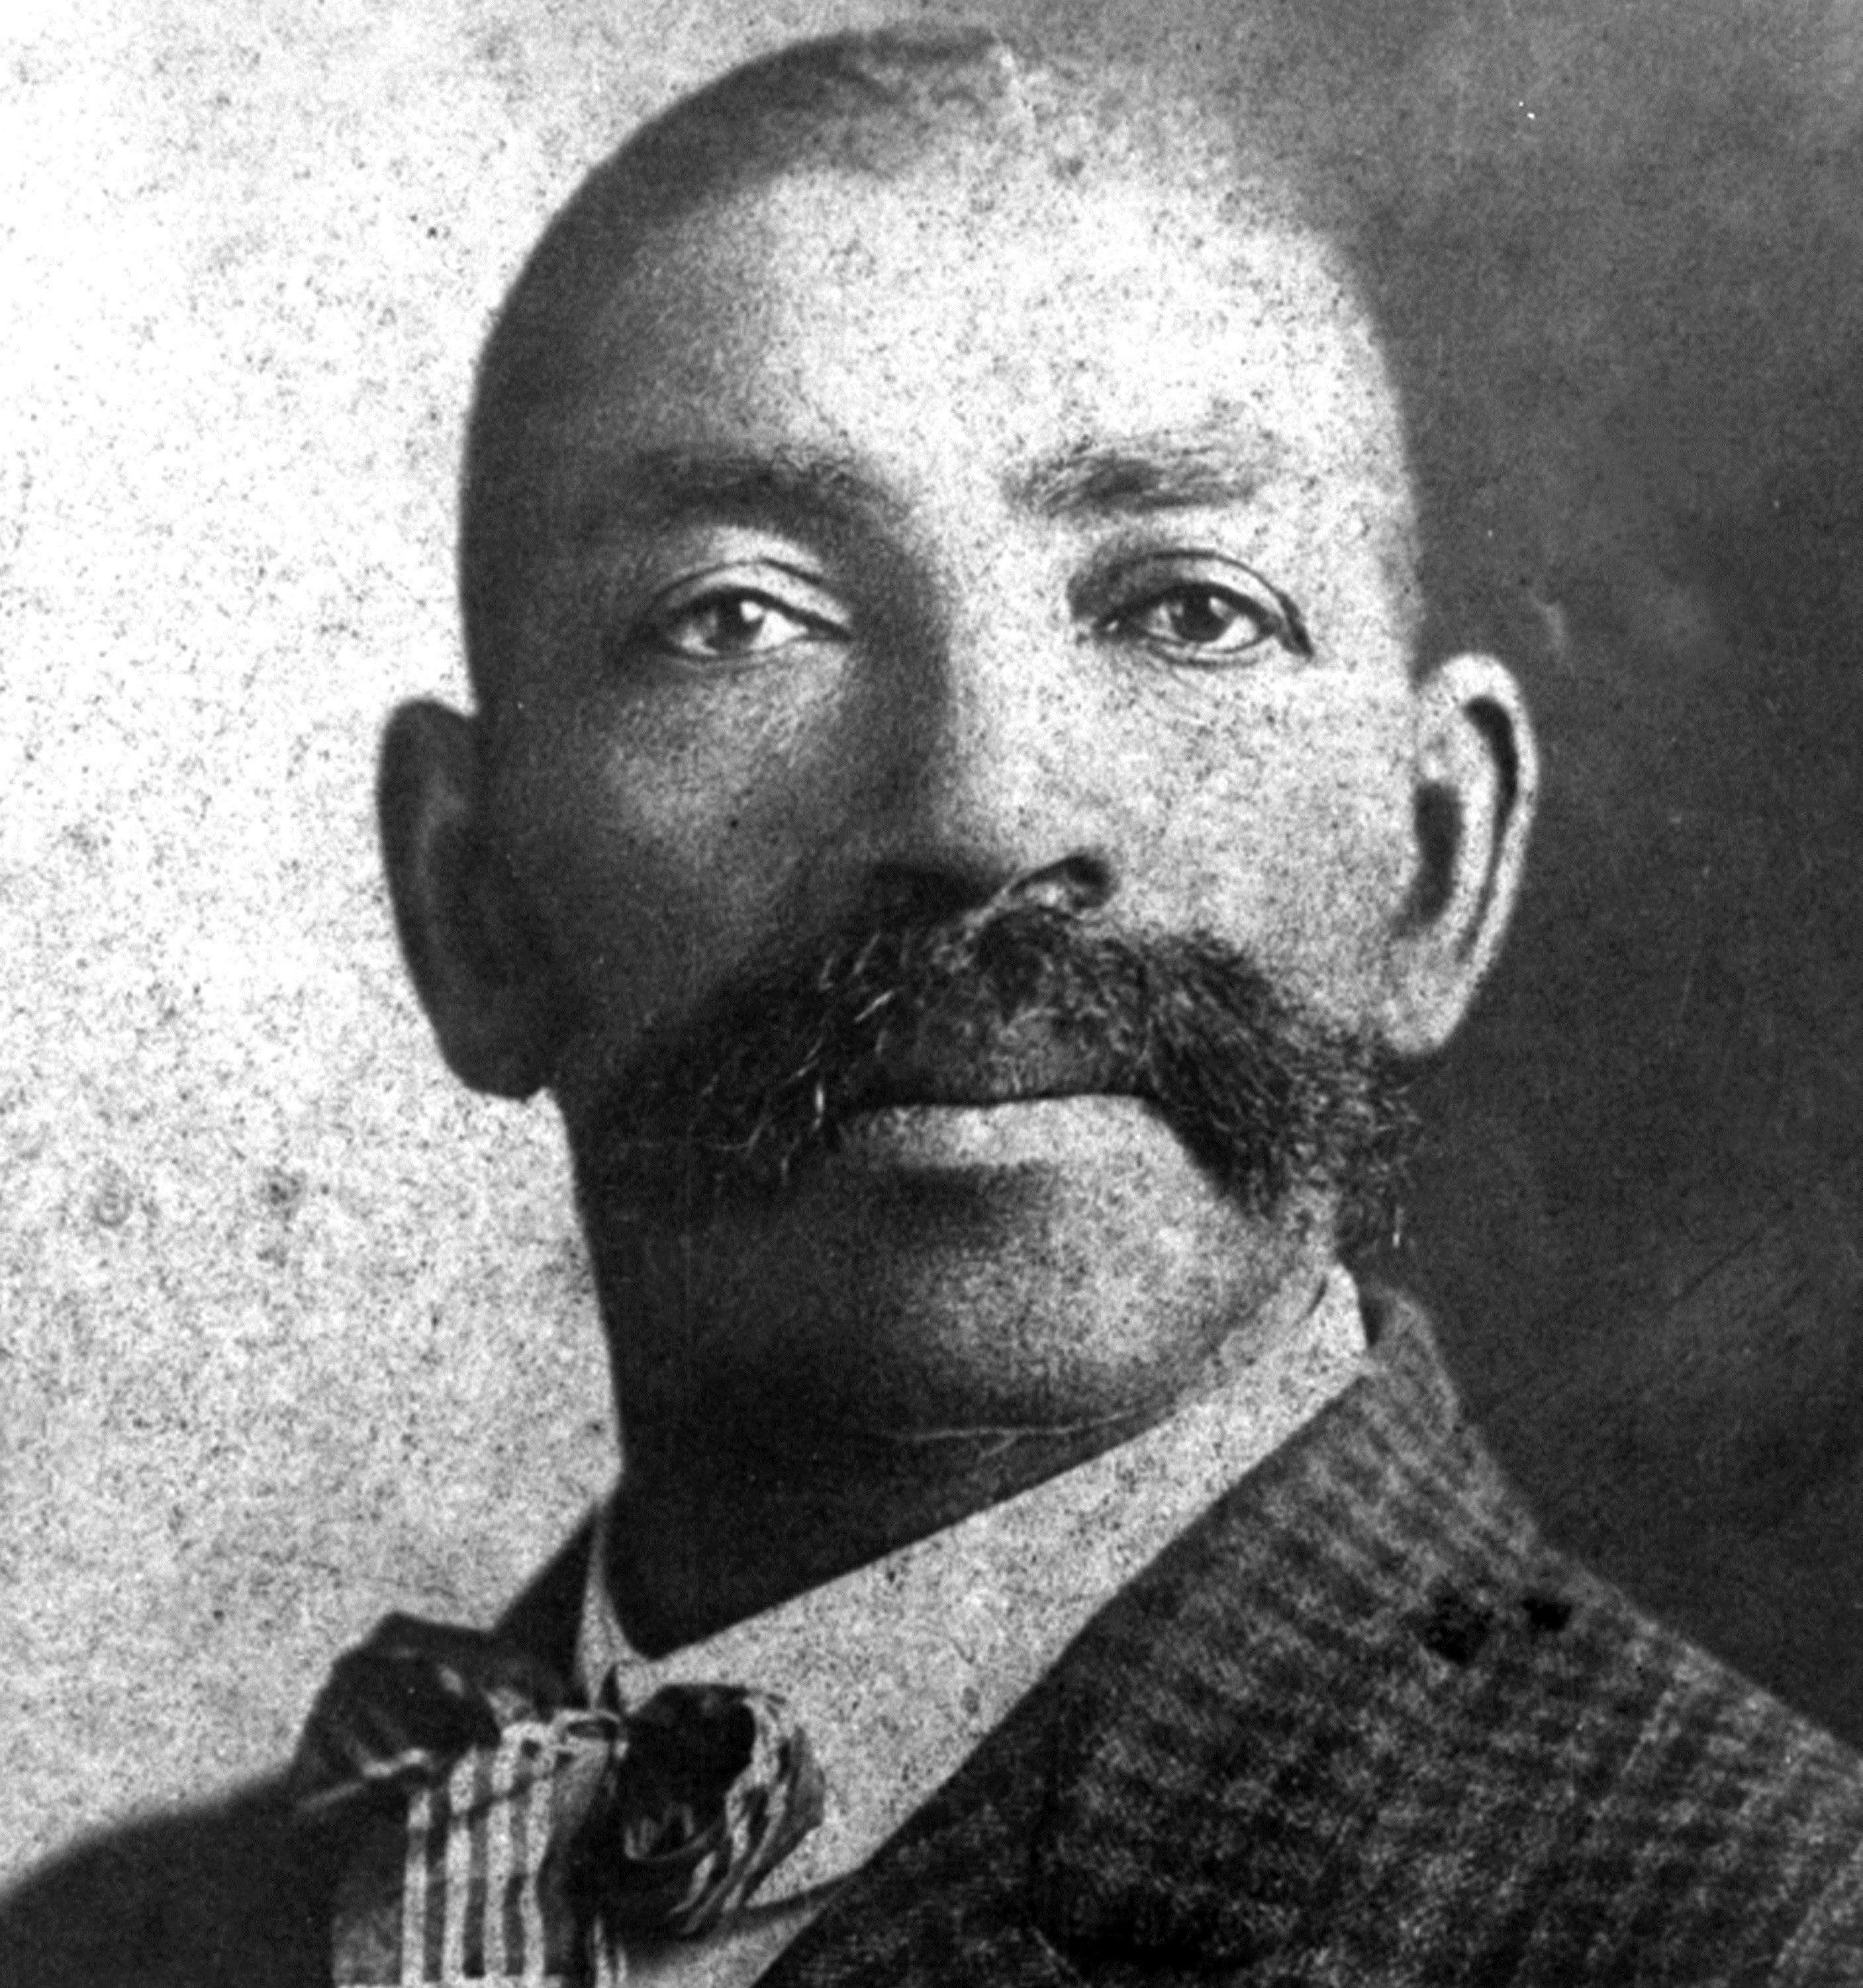 While historians posit that the Wild West was nowhere near as wild as Hollywood would have you believe, it was a place where certain lawmen forged reputations as legendary heroes in their pursuit of outlaws. (Although in some cases, such as Wyatt Earp, the lawmen were little better than some of the criminals, see: Wyatt Earp – The Great American… [...]